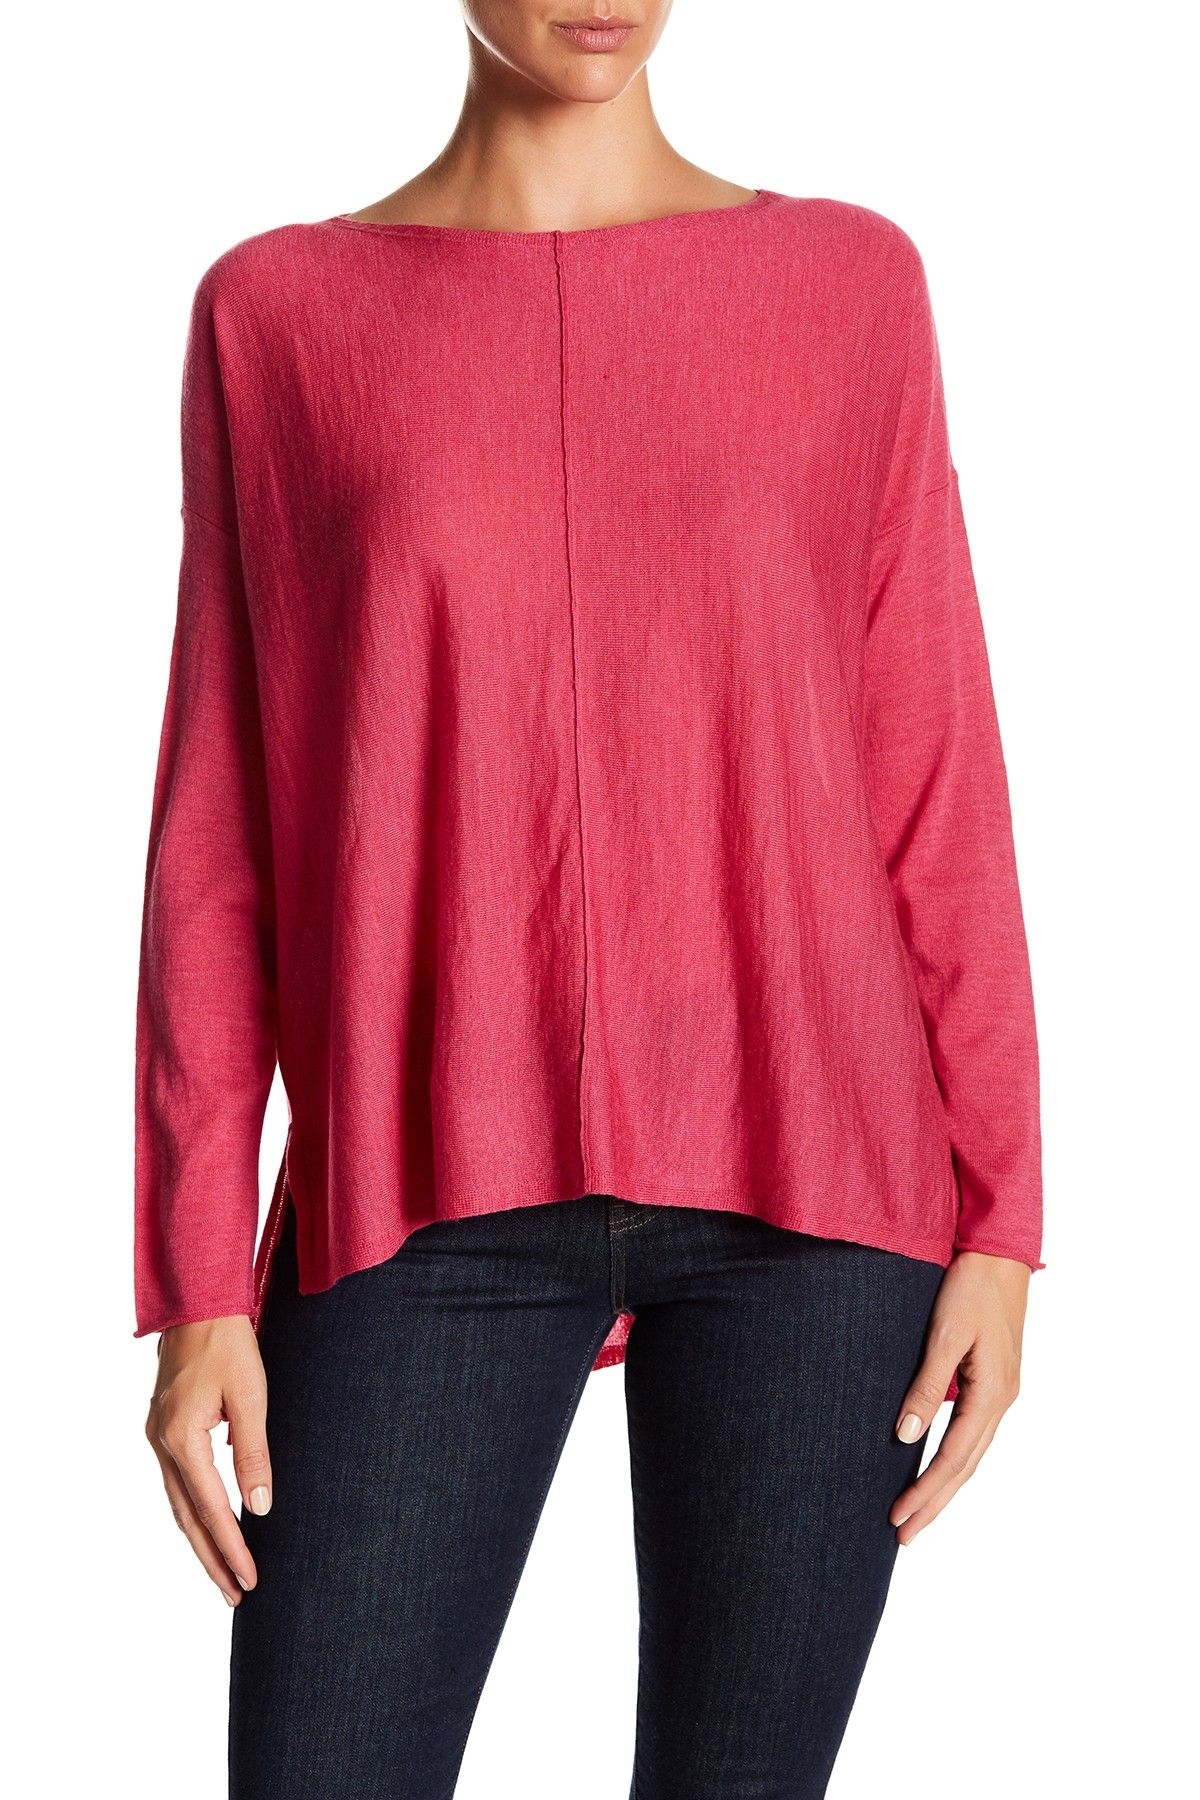 fall eileen splurge seamed nordstrom fisher wool pin drop neck sweater pinterest item and merino rack bateau shoulder